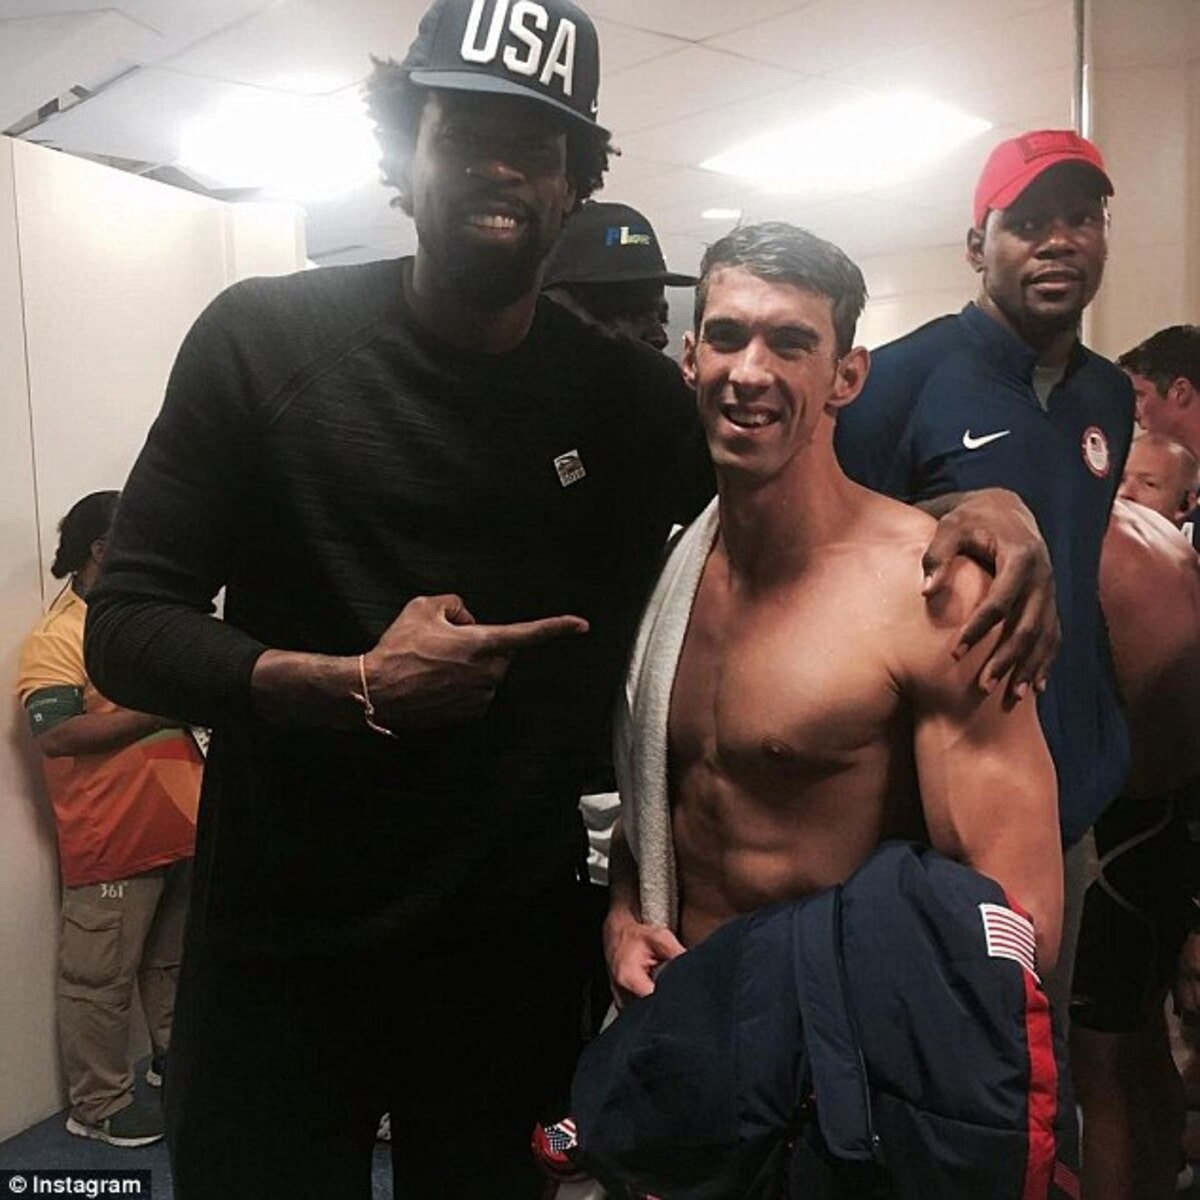 370FA46D00000578-0-Basketball_player_DeAndre_Jordan_shared_a_picture_with_Phelps_on-a-3_1470806167005